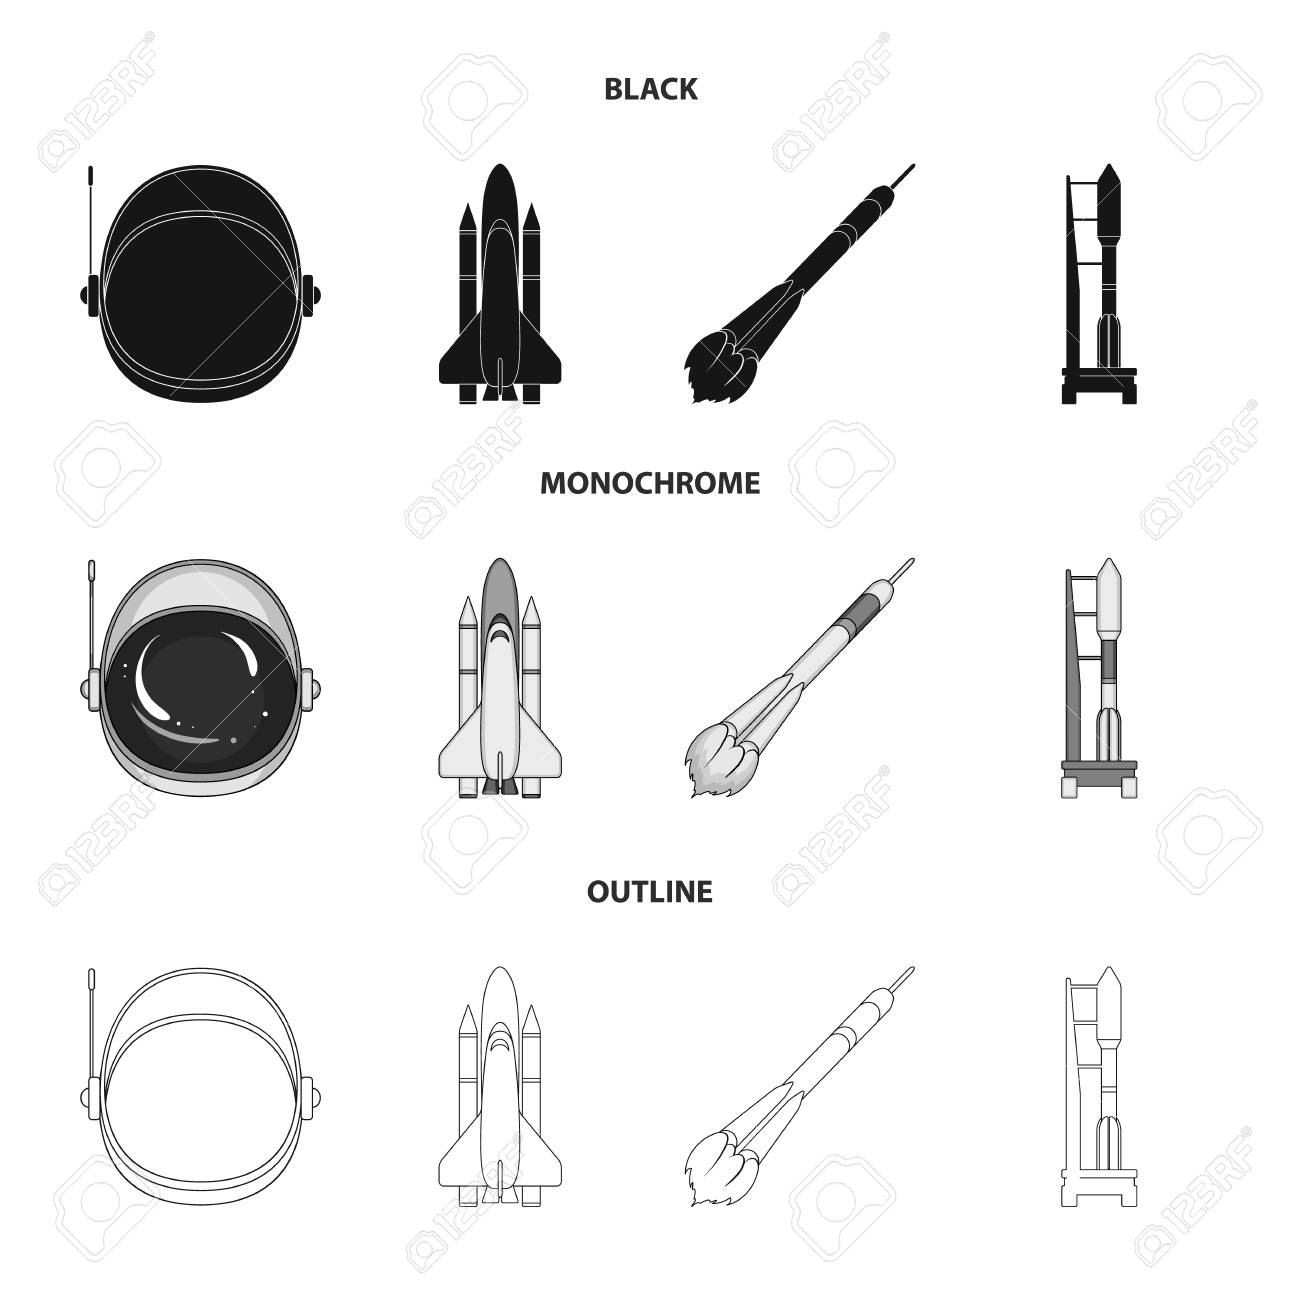 106513818 a spaceship in space a cargo shuttle a launch pad an astronaut helmet space technology set collectio a spaceship in space, a cargo shuttle, a launch pad, an astronaut